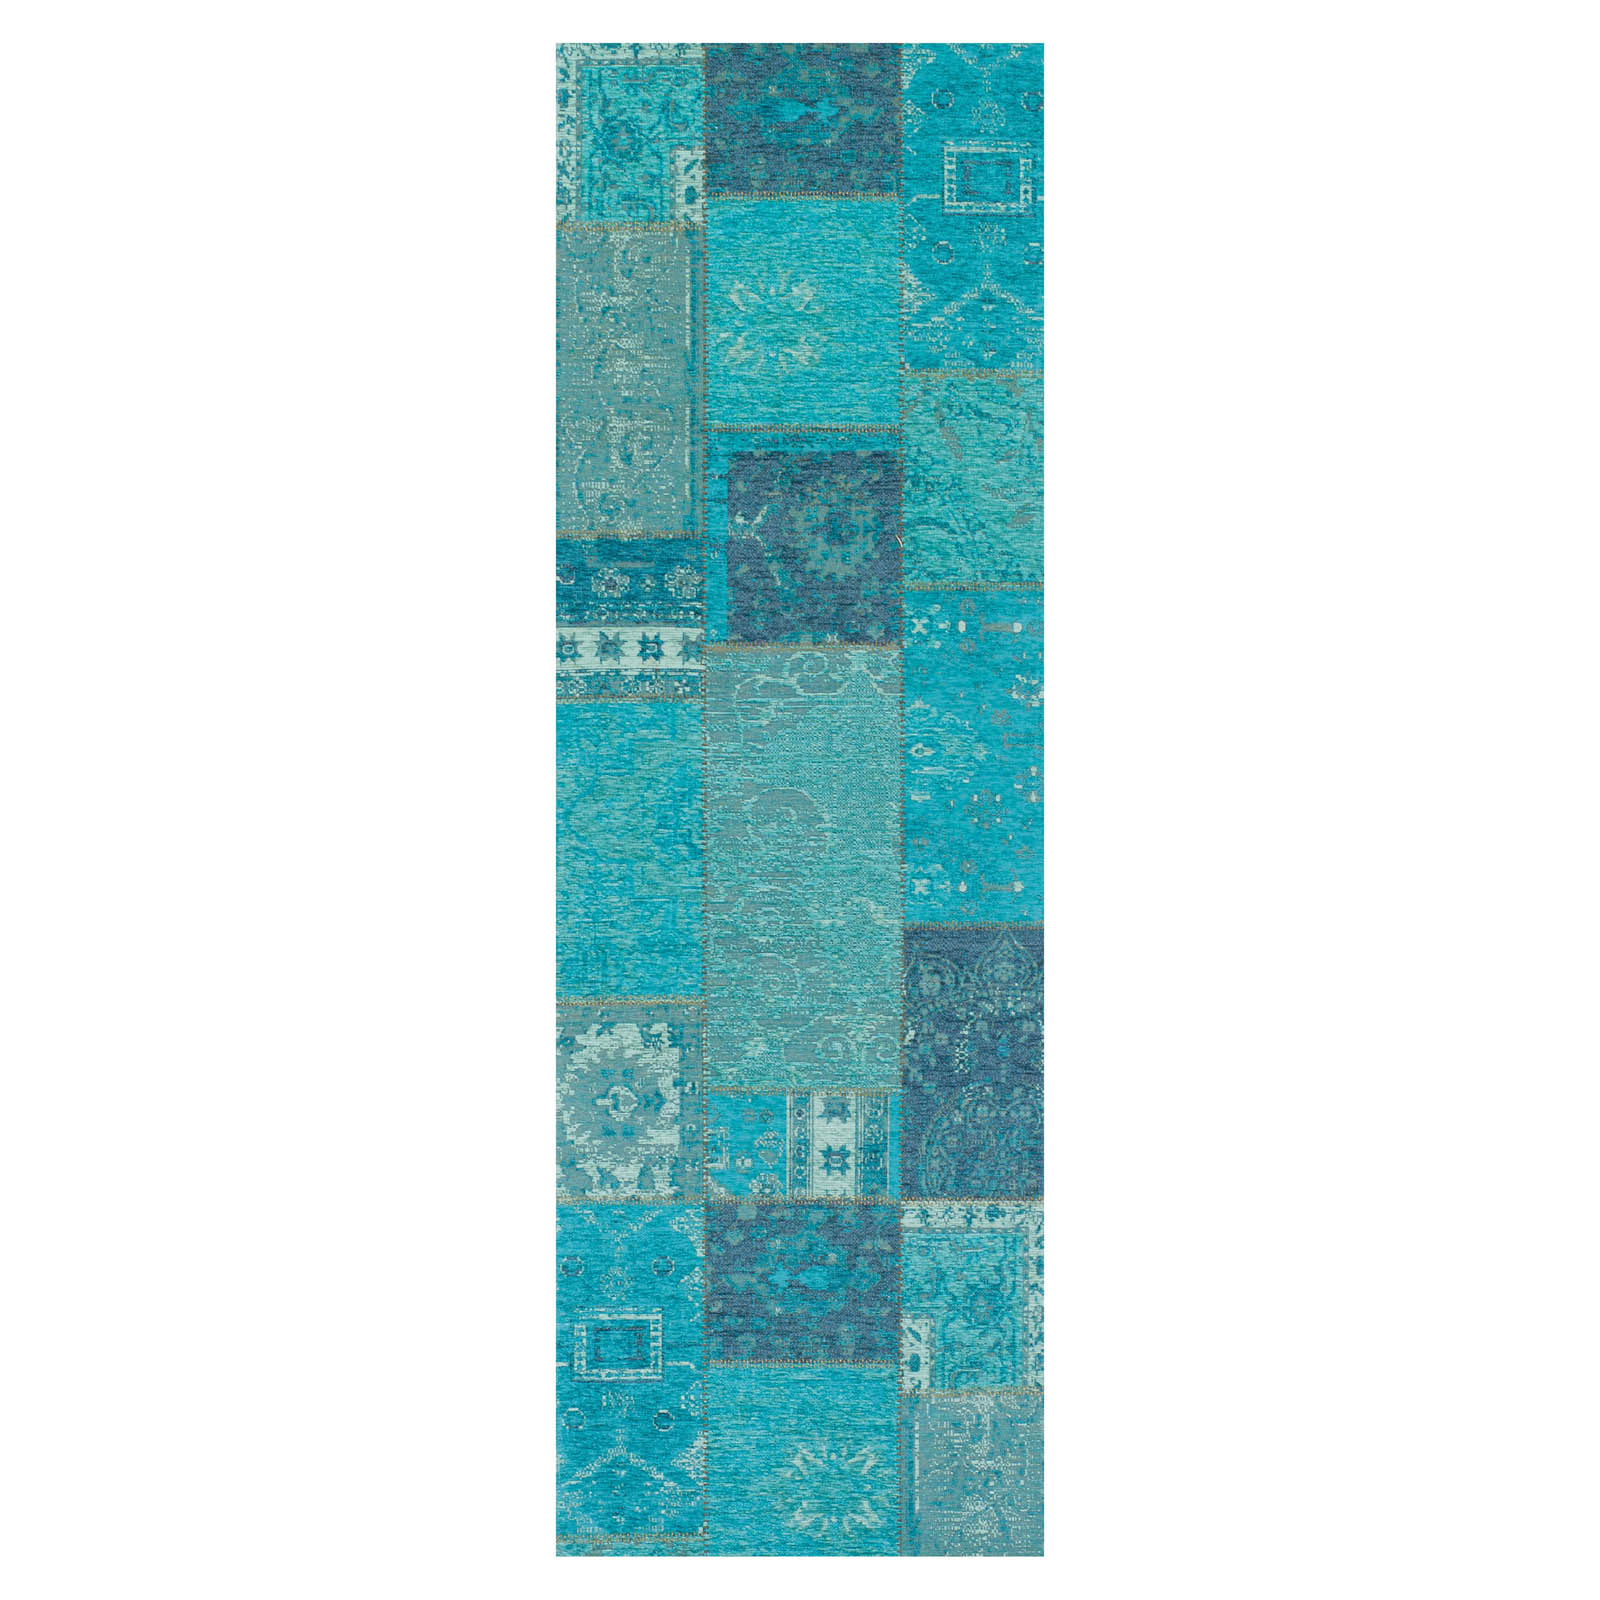 Renaissance 25 L Hallway Runners in Turquoise